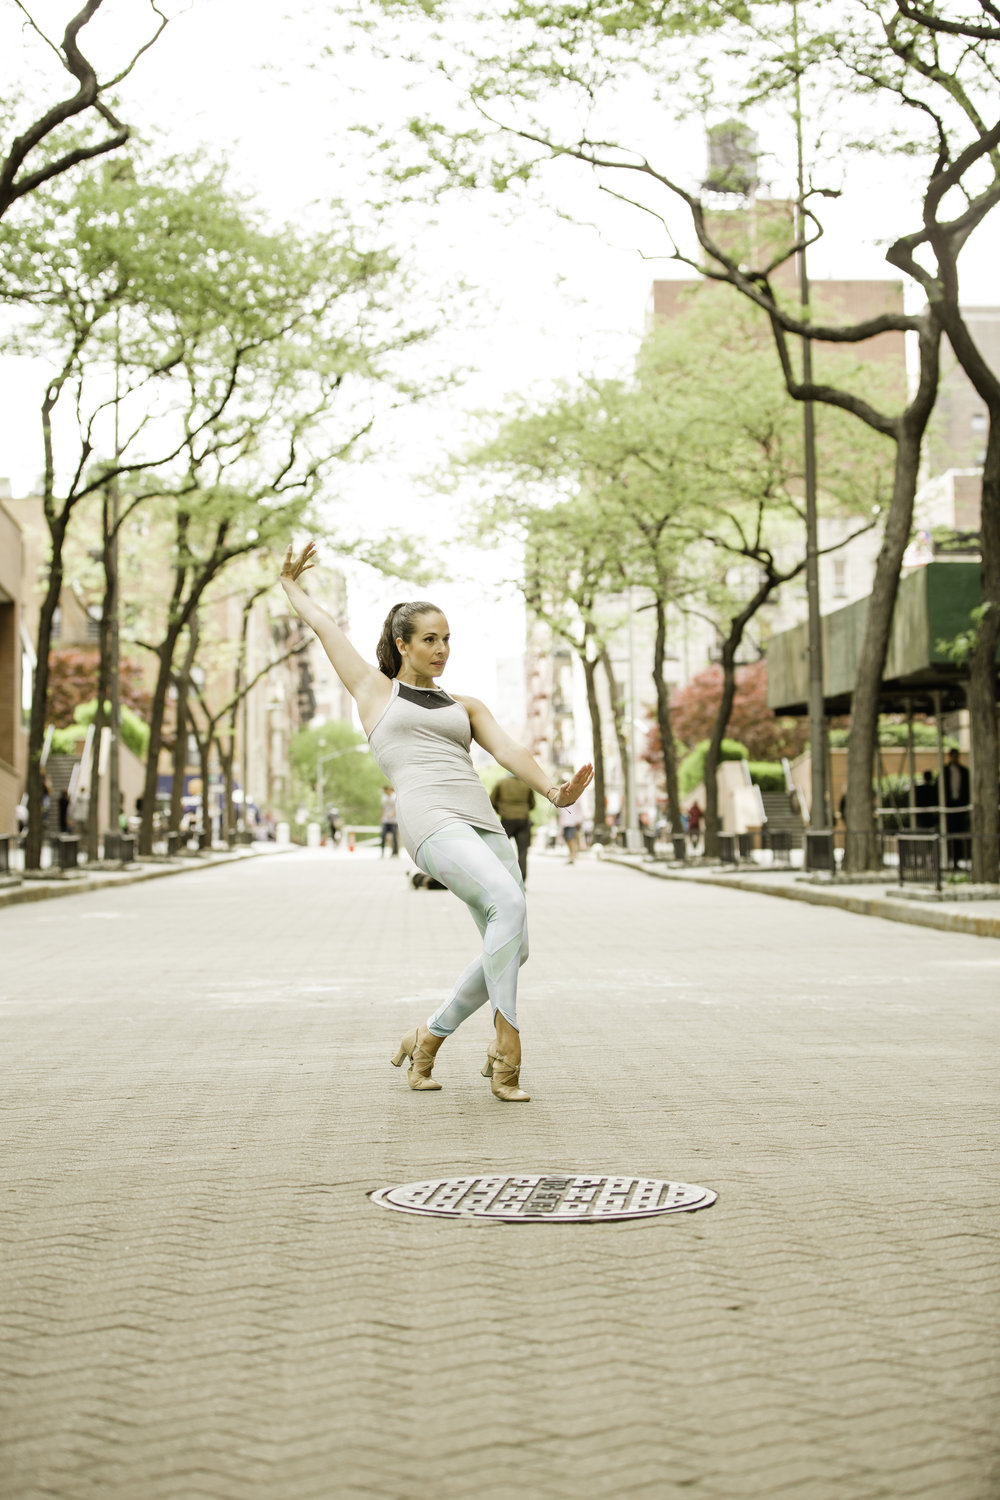 Dancing on the NYC streets in my Puma leggings and tank! All current Puma items. Photography by Francisco Graciano.